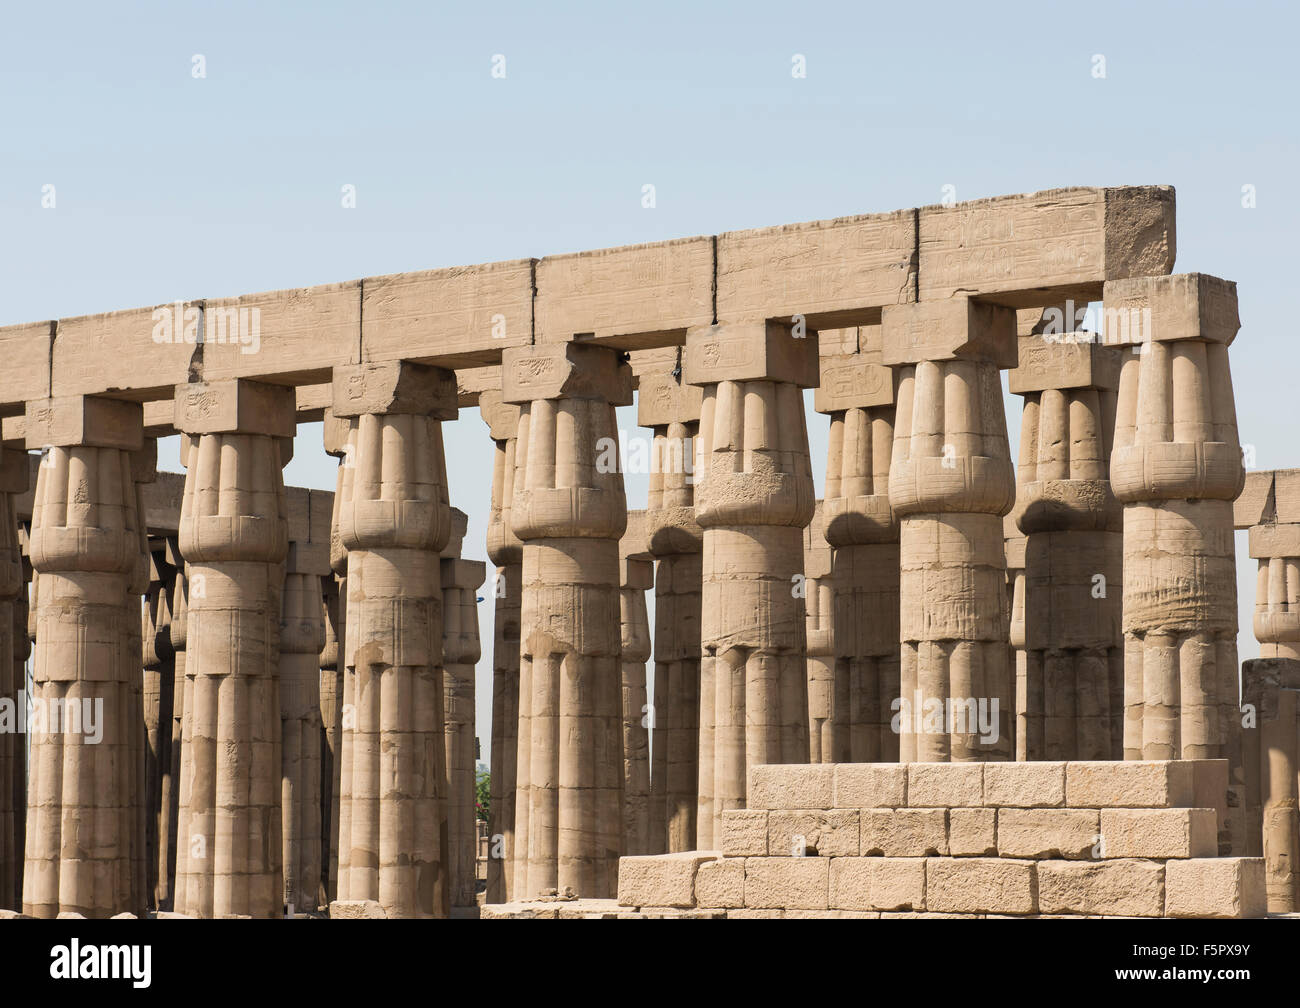 Columns in an ancient egyptian temple at Luxor Stock Photo 89628727